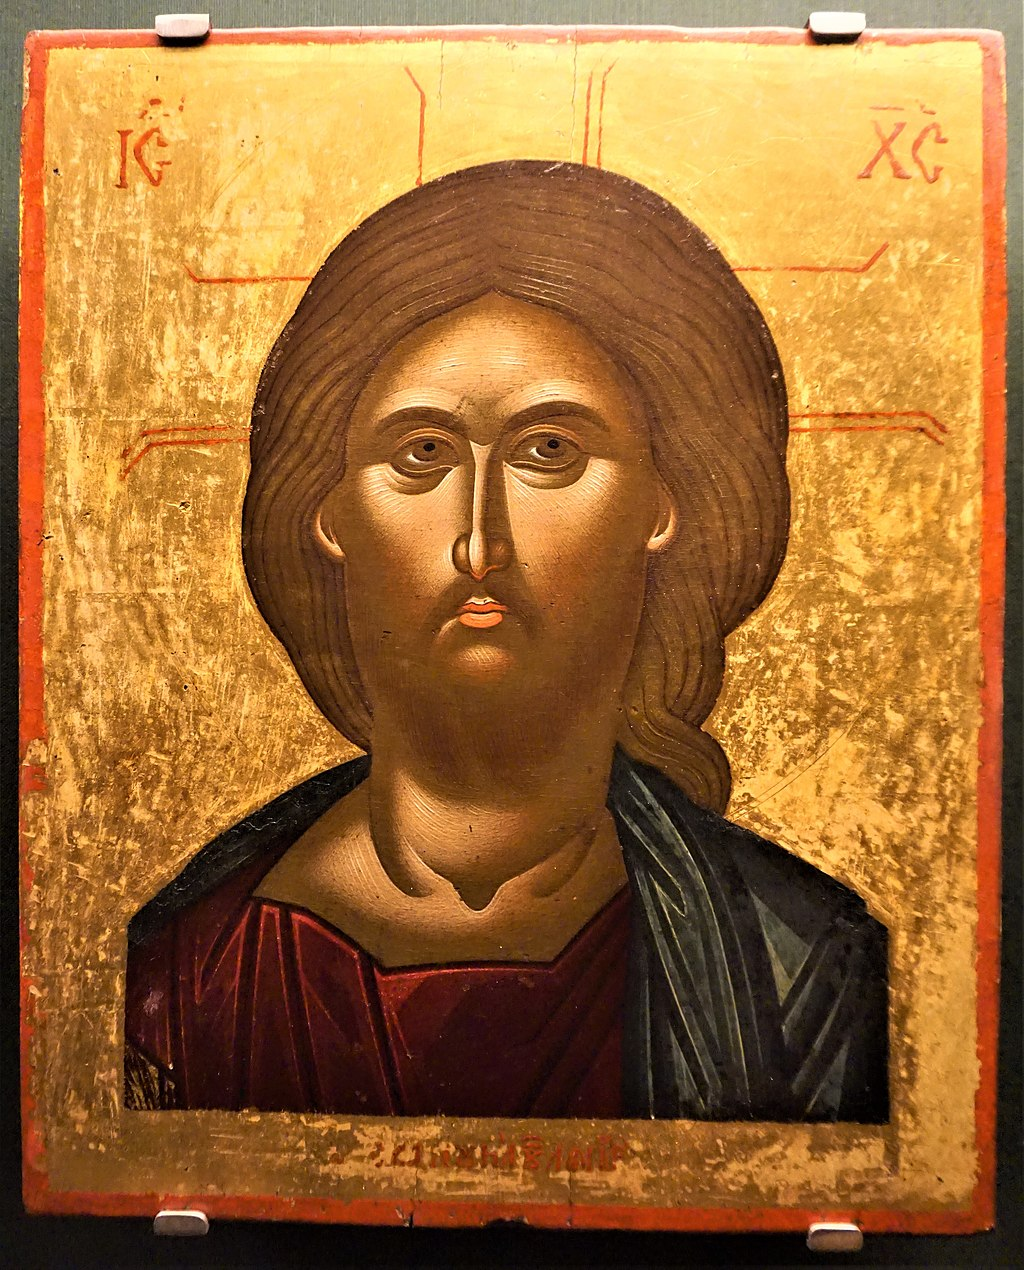 Christ by Emmanuel Lambardos - Benaki Museum, Athens - Joy of Museums